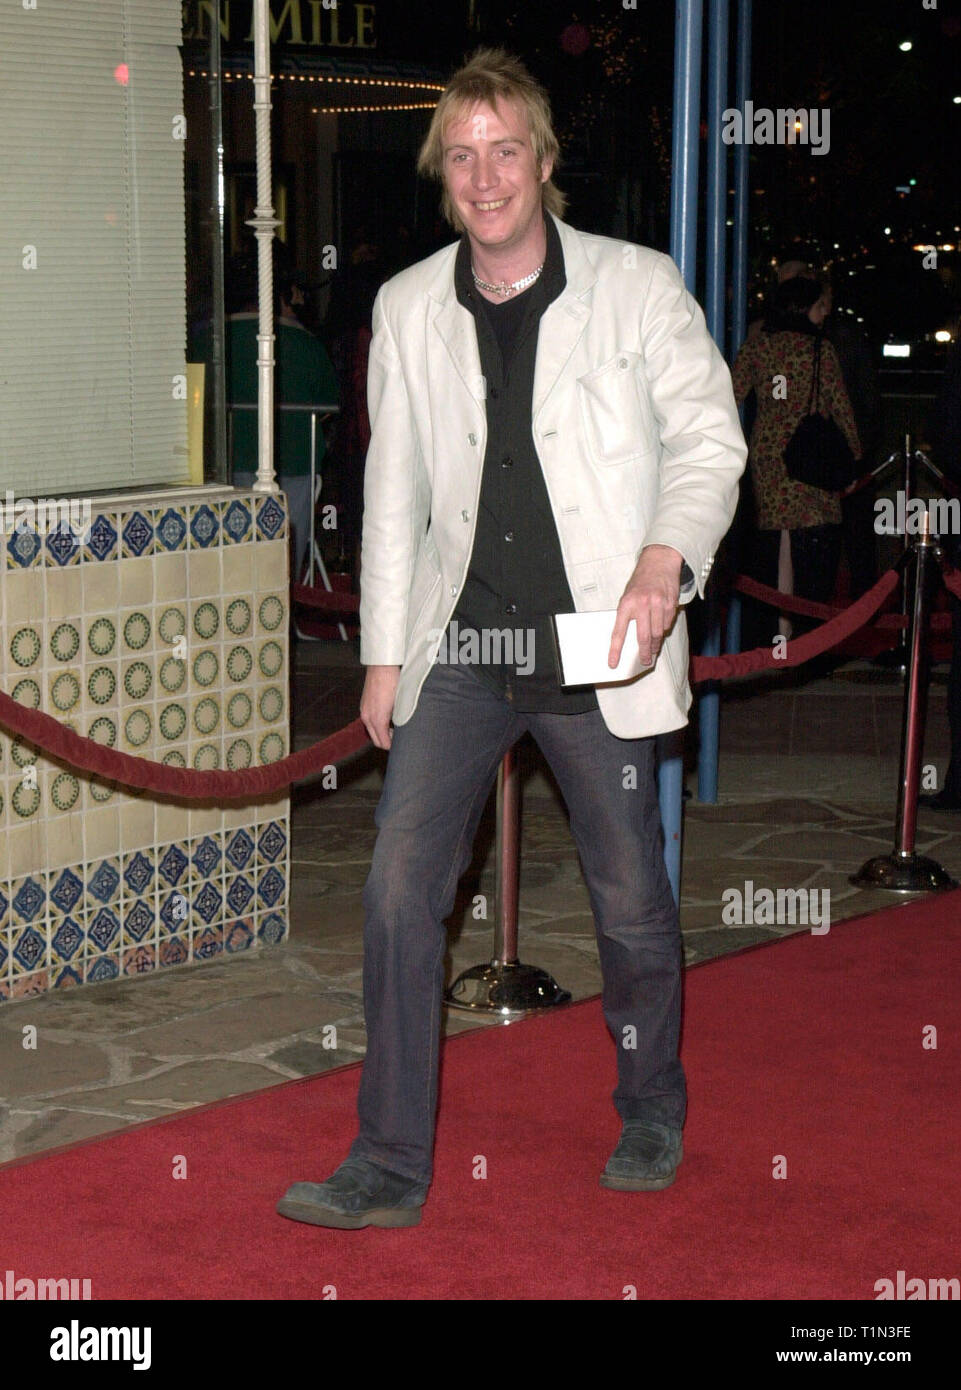 LOS ANGELES, CA. December 12, 1999:   'Notting Hill' star Rhys Ifans at the Los Angeles premiere of 'The Talented Mr. Ripley.' © Paul Smith / Featureflash - Stock Image